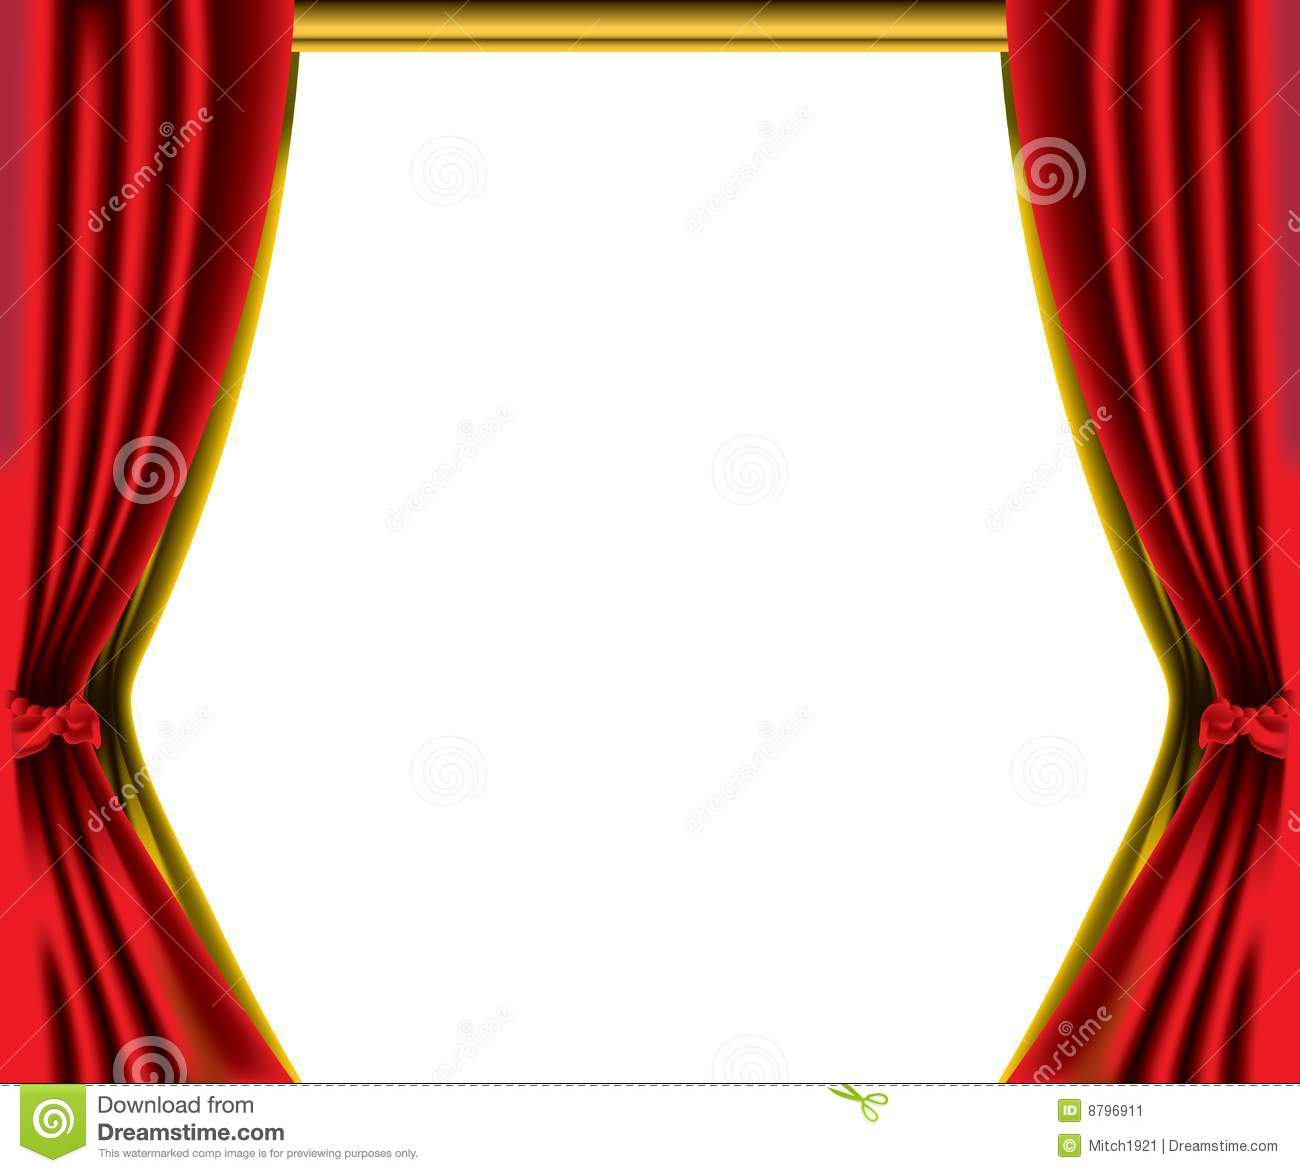 Gold movie theater curtains galleryhip com the hippest galleries